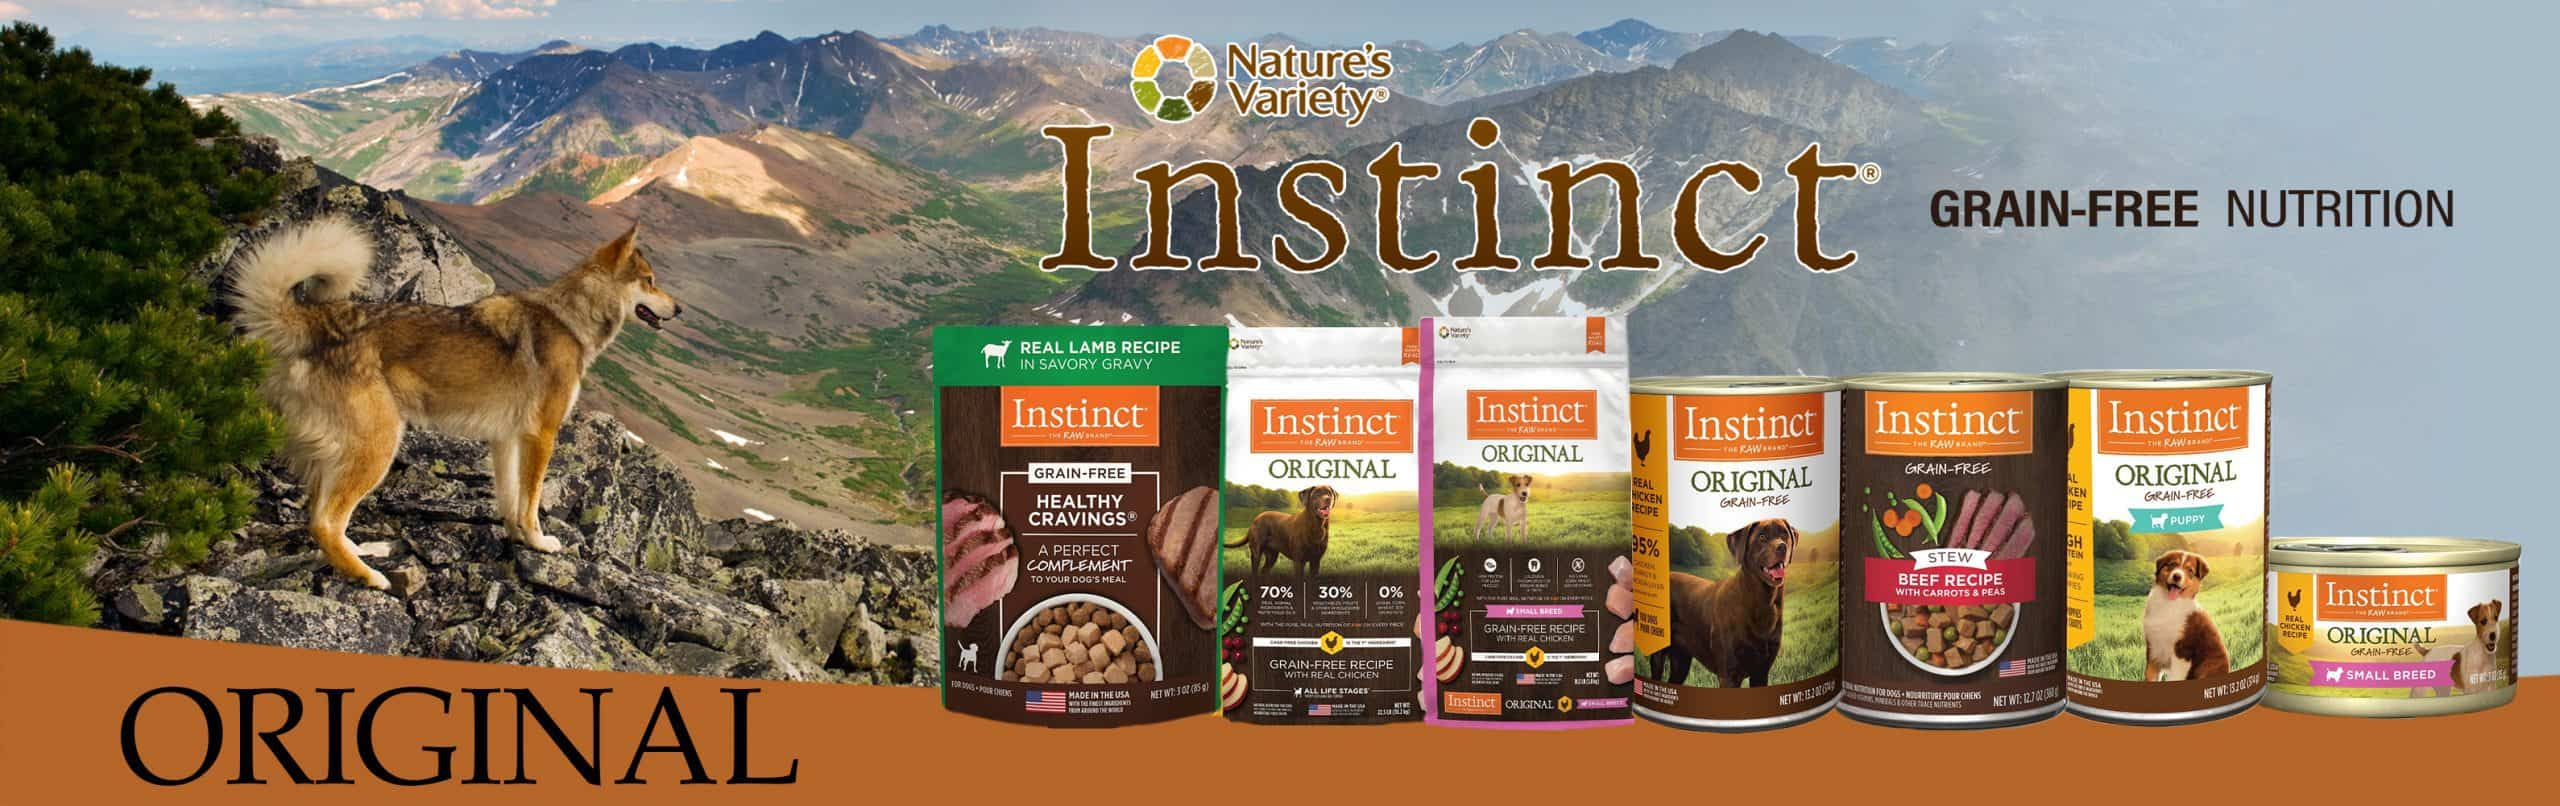 Instinct Dog Food Review 2020: Best Raw Food Diet for Pooches? 21